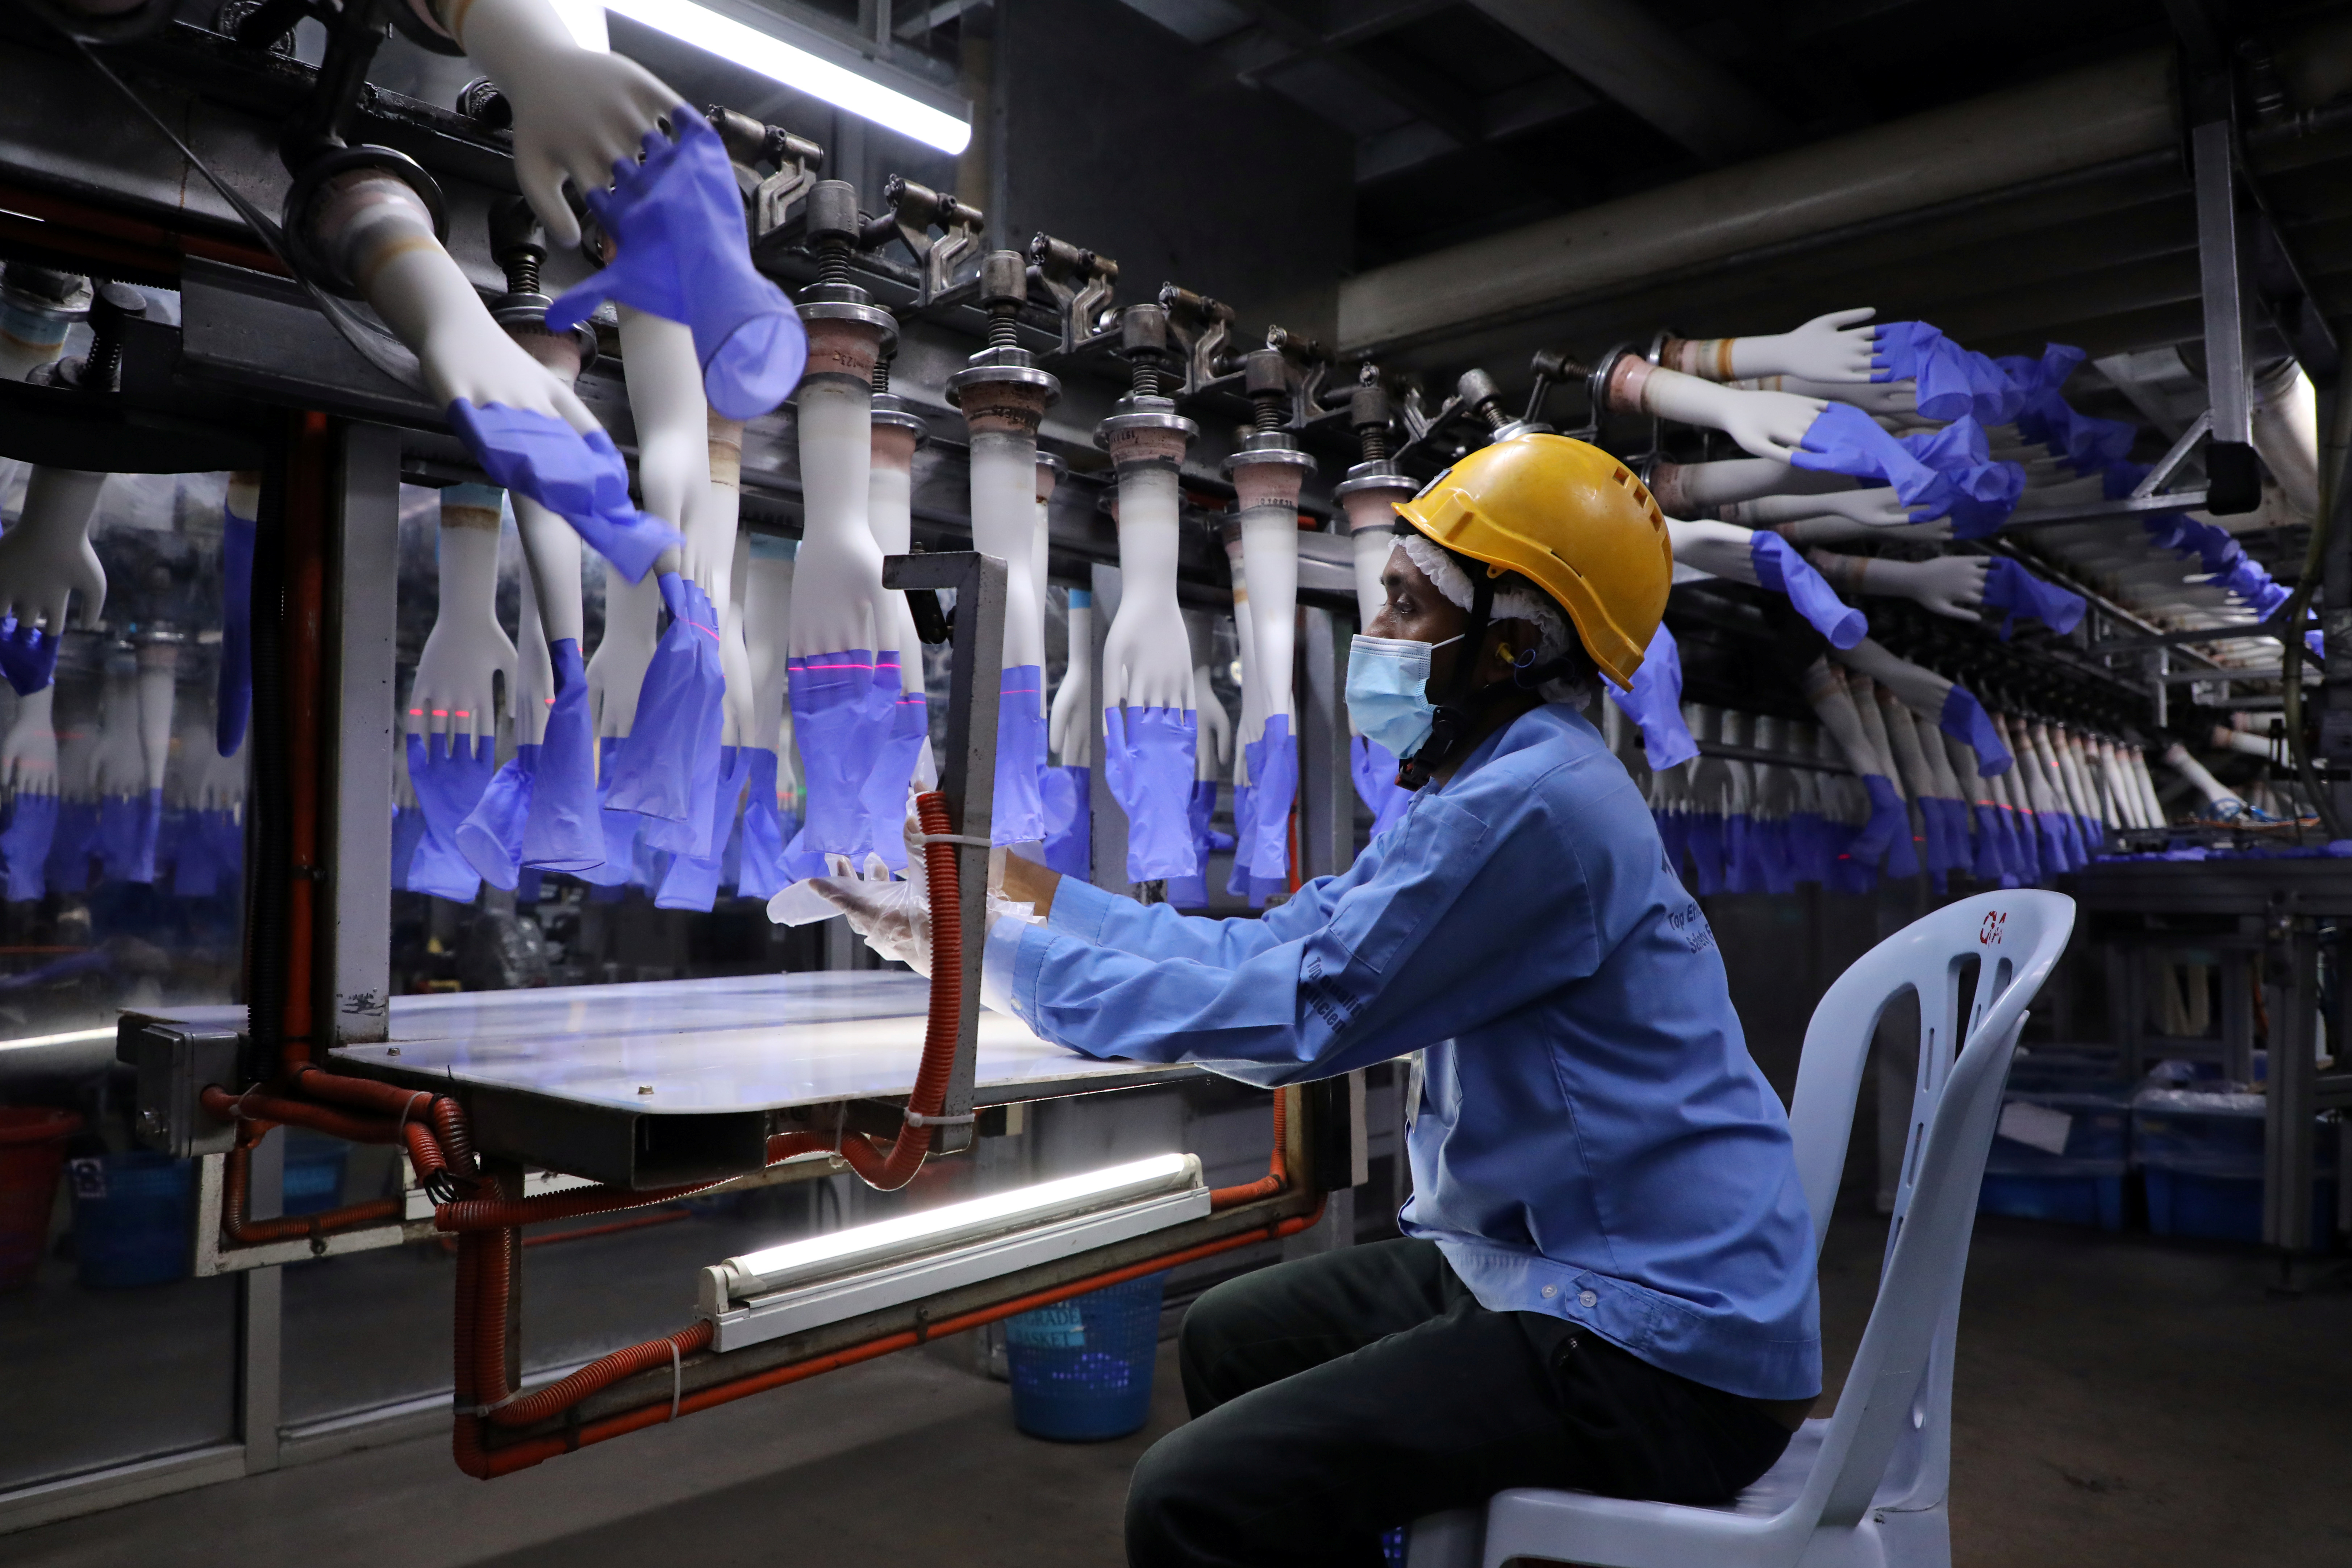 A worker inspects newly-made gloves at Top Glove factory in Shah Alam, Malaysia August 26, 2020. REUTERS/Lim Huey Teng